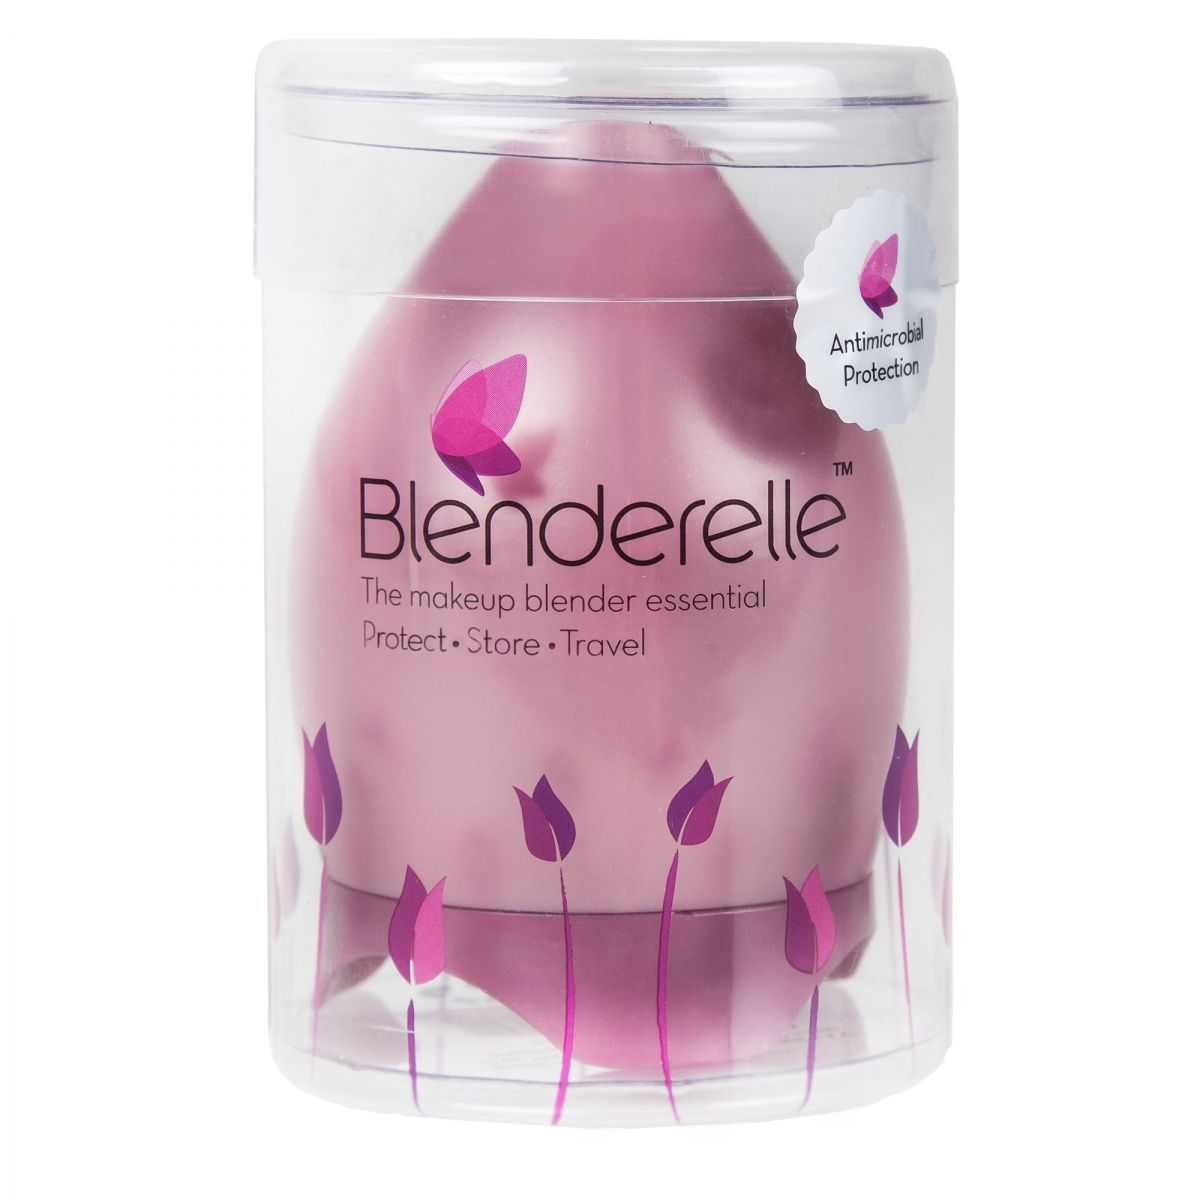 Protect Store Its Never A Good Idea To Store Your Makeup Blender Anywhere It Can Come Into Con Makeup Blender Exposed Skin Care Organic Anti Aging Skin Care